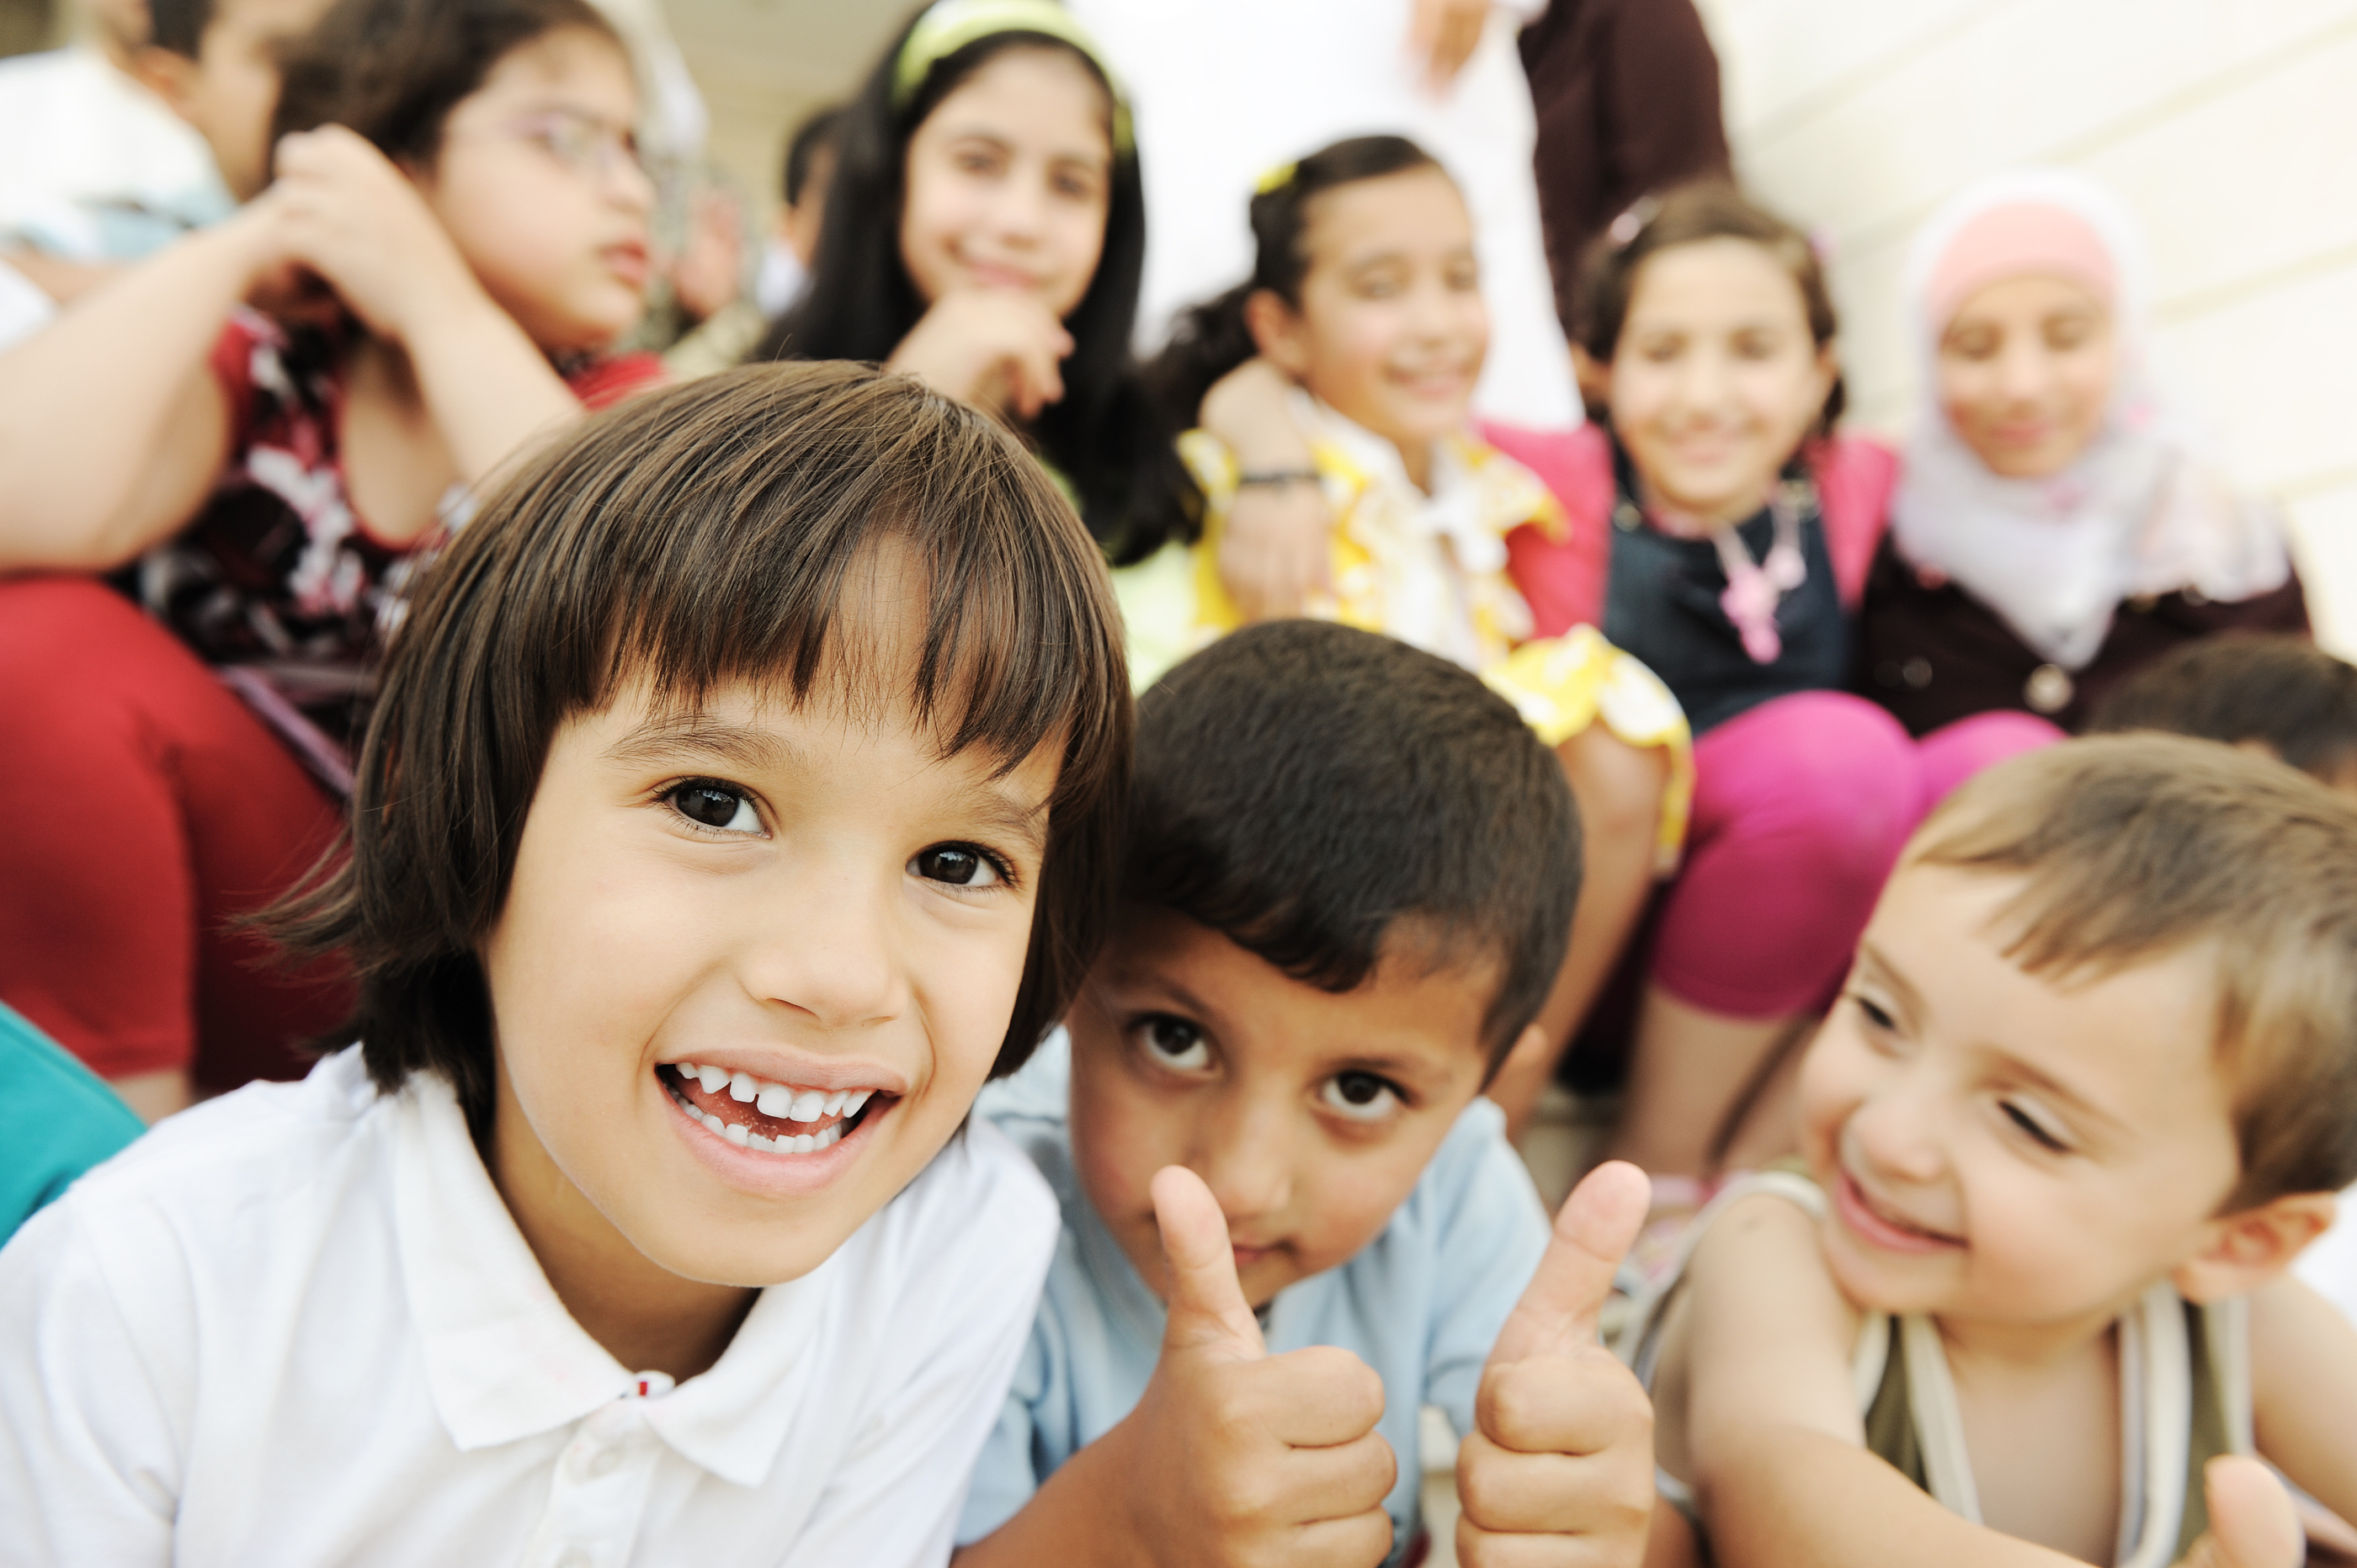 5 Things You Need to Know About Children Health Insurance - Acko